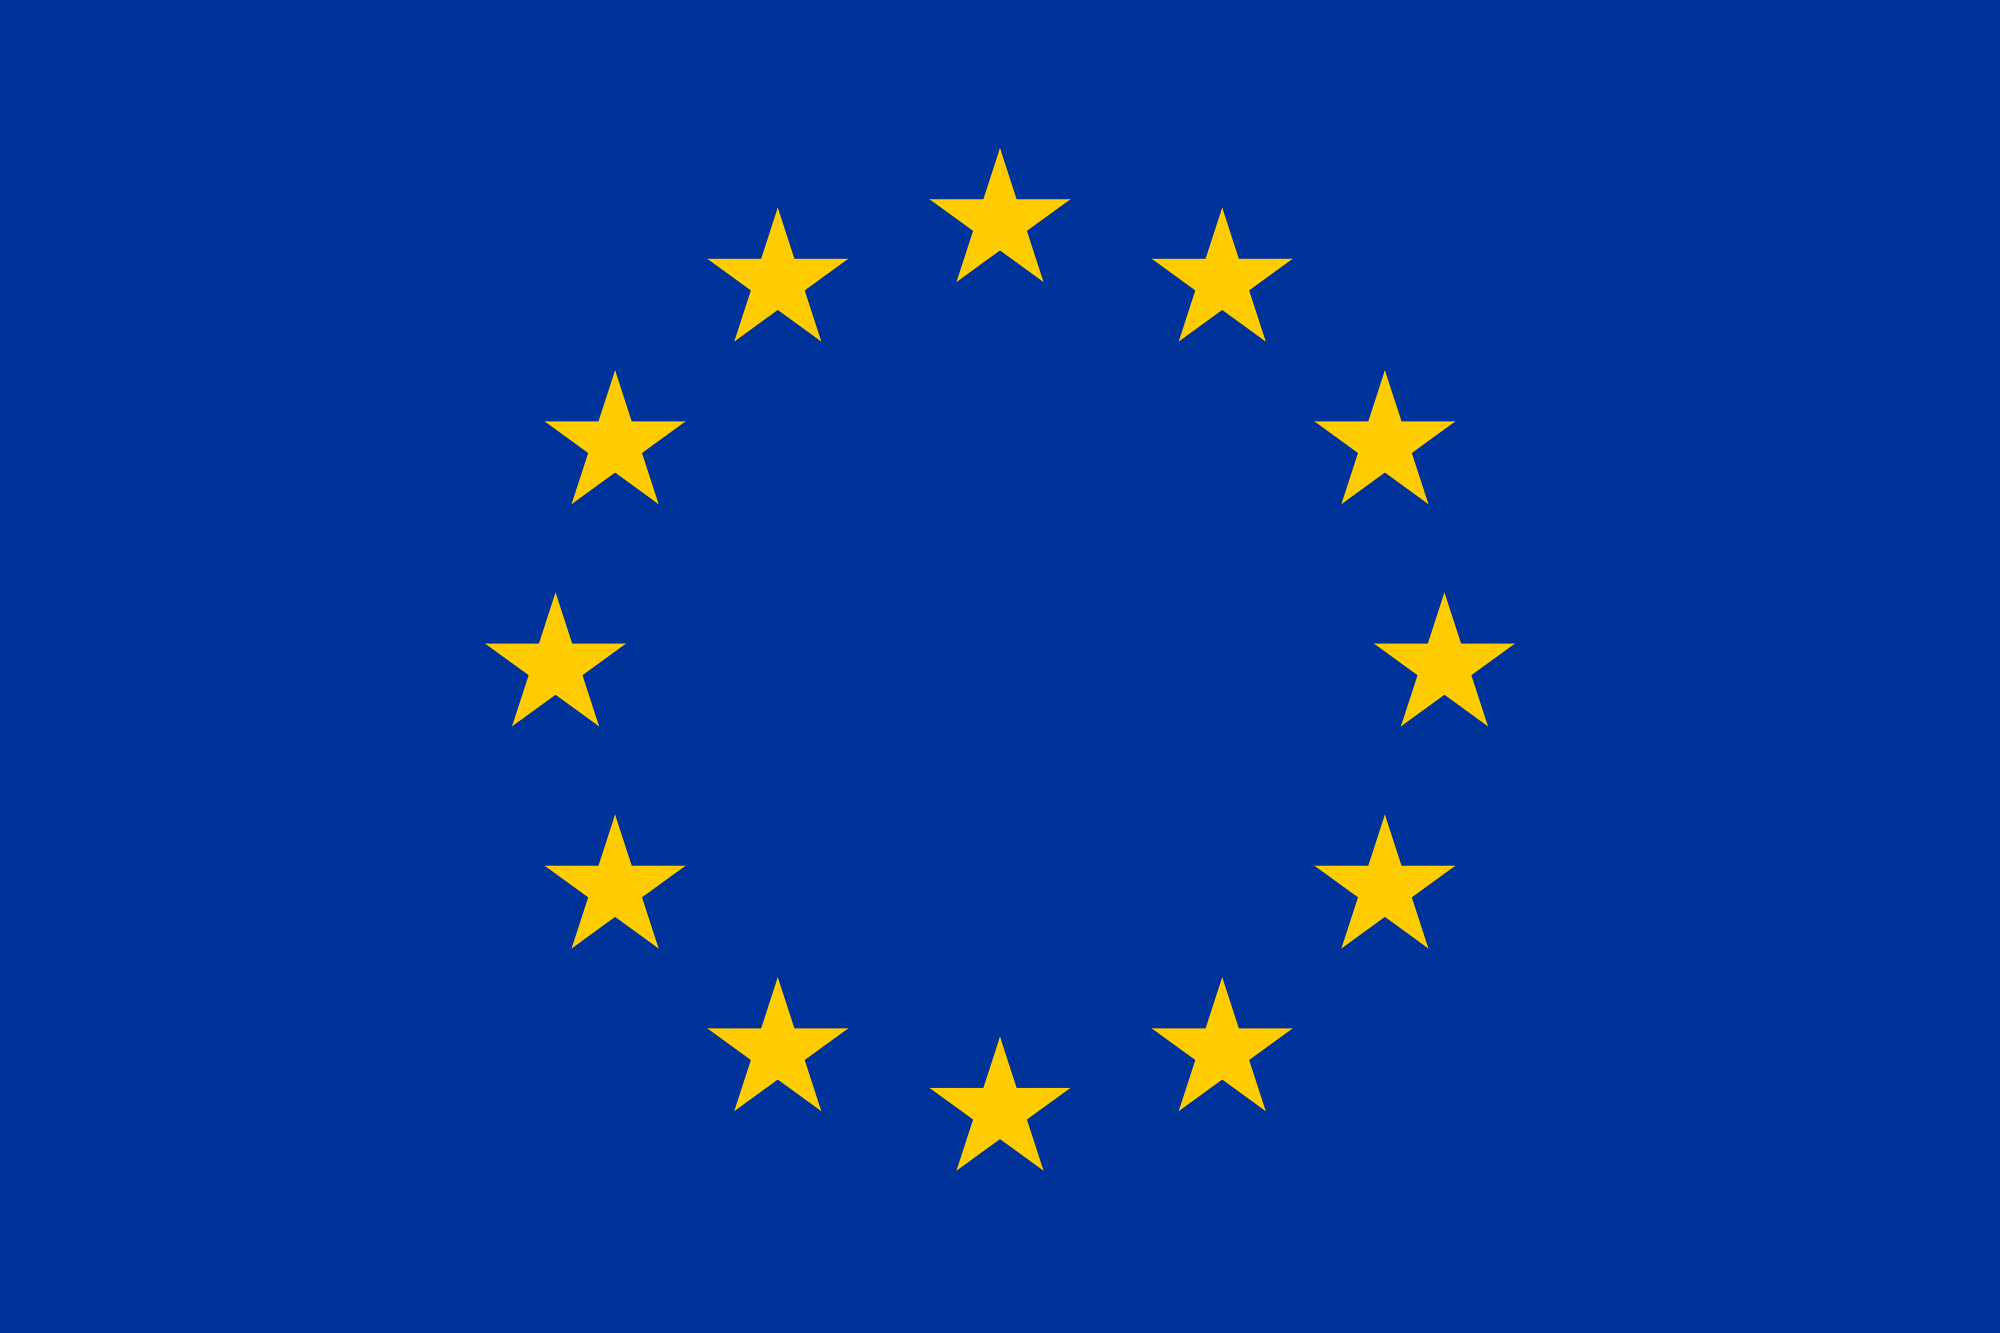 flag_of_europe_svg.png